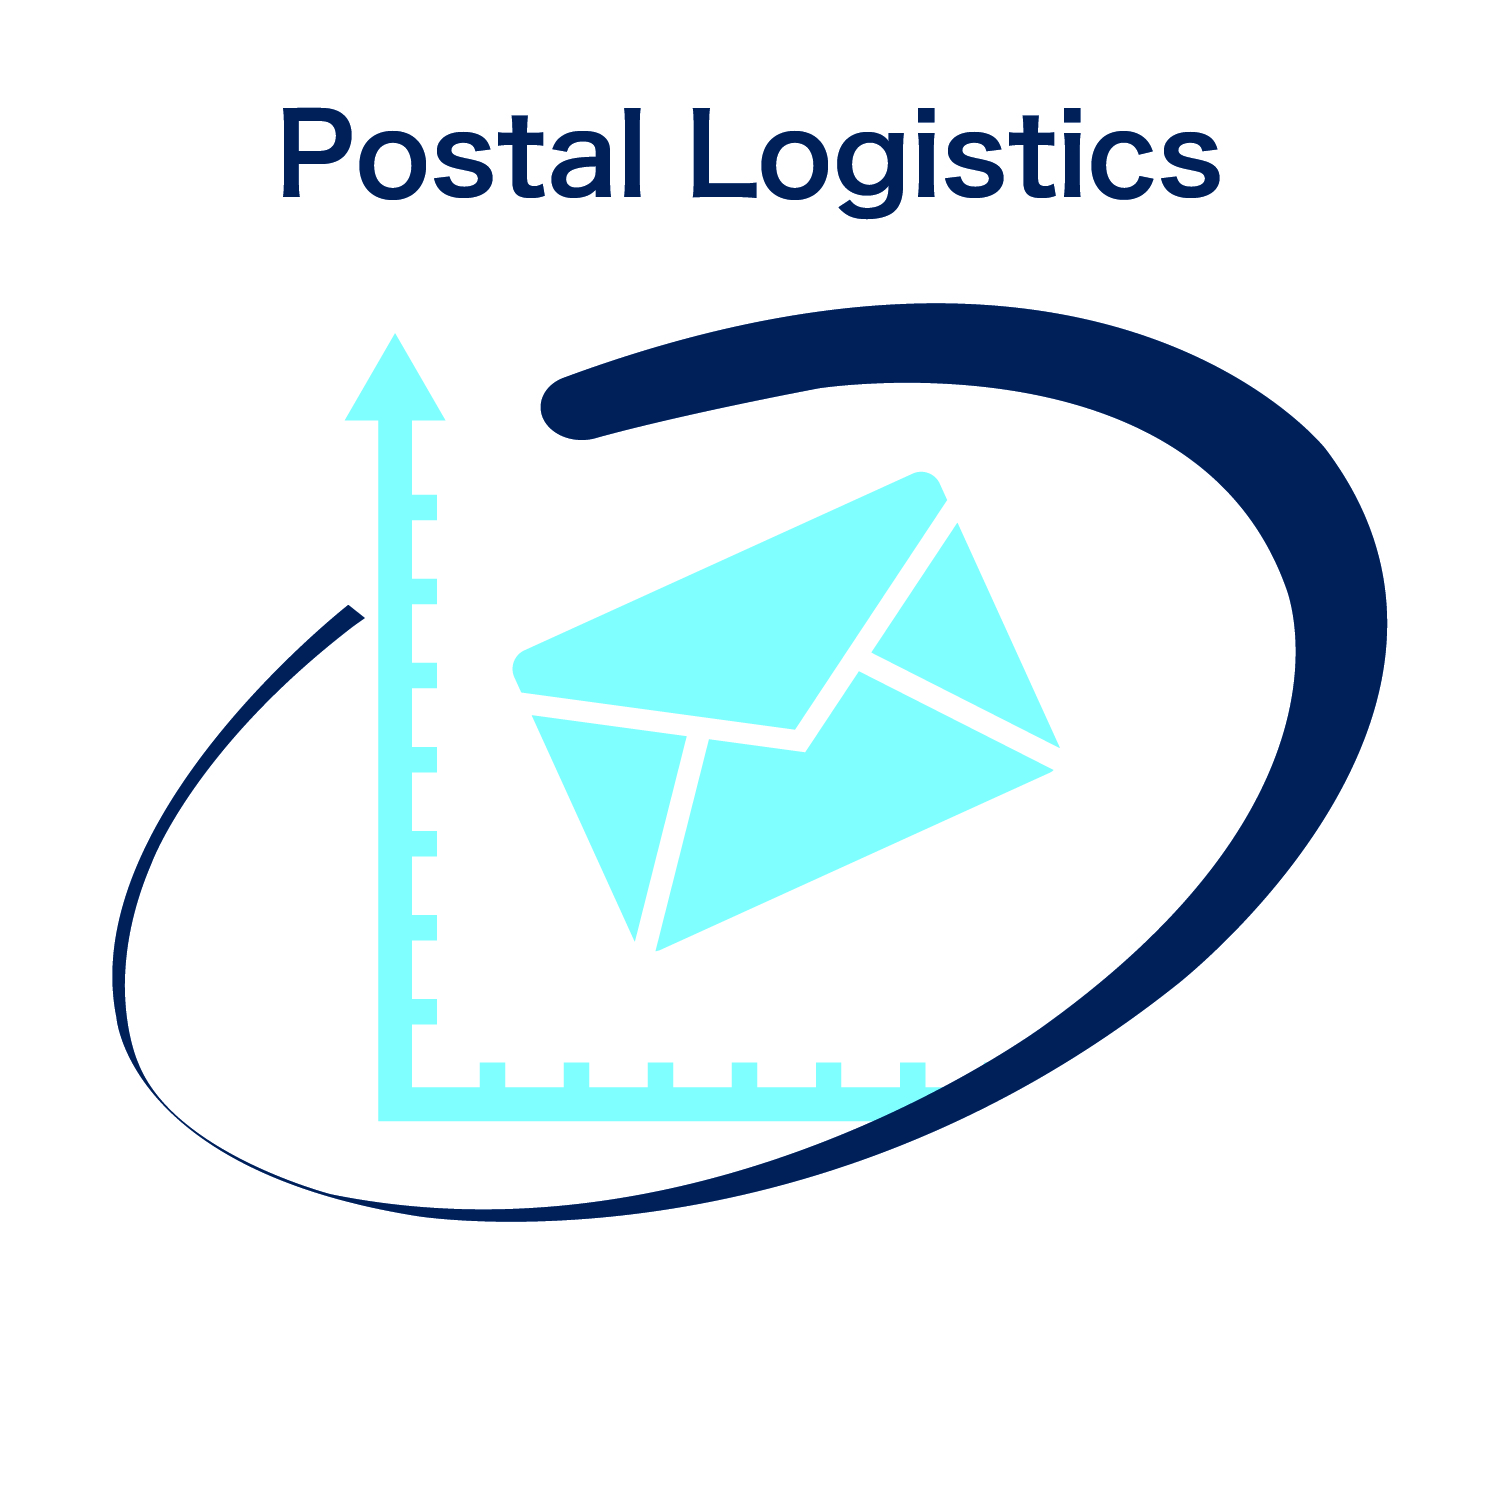 The Postal Logistics team individually evaluates each campaign to develop a customized mail plan that balances cost with postal efficiency.